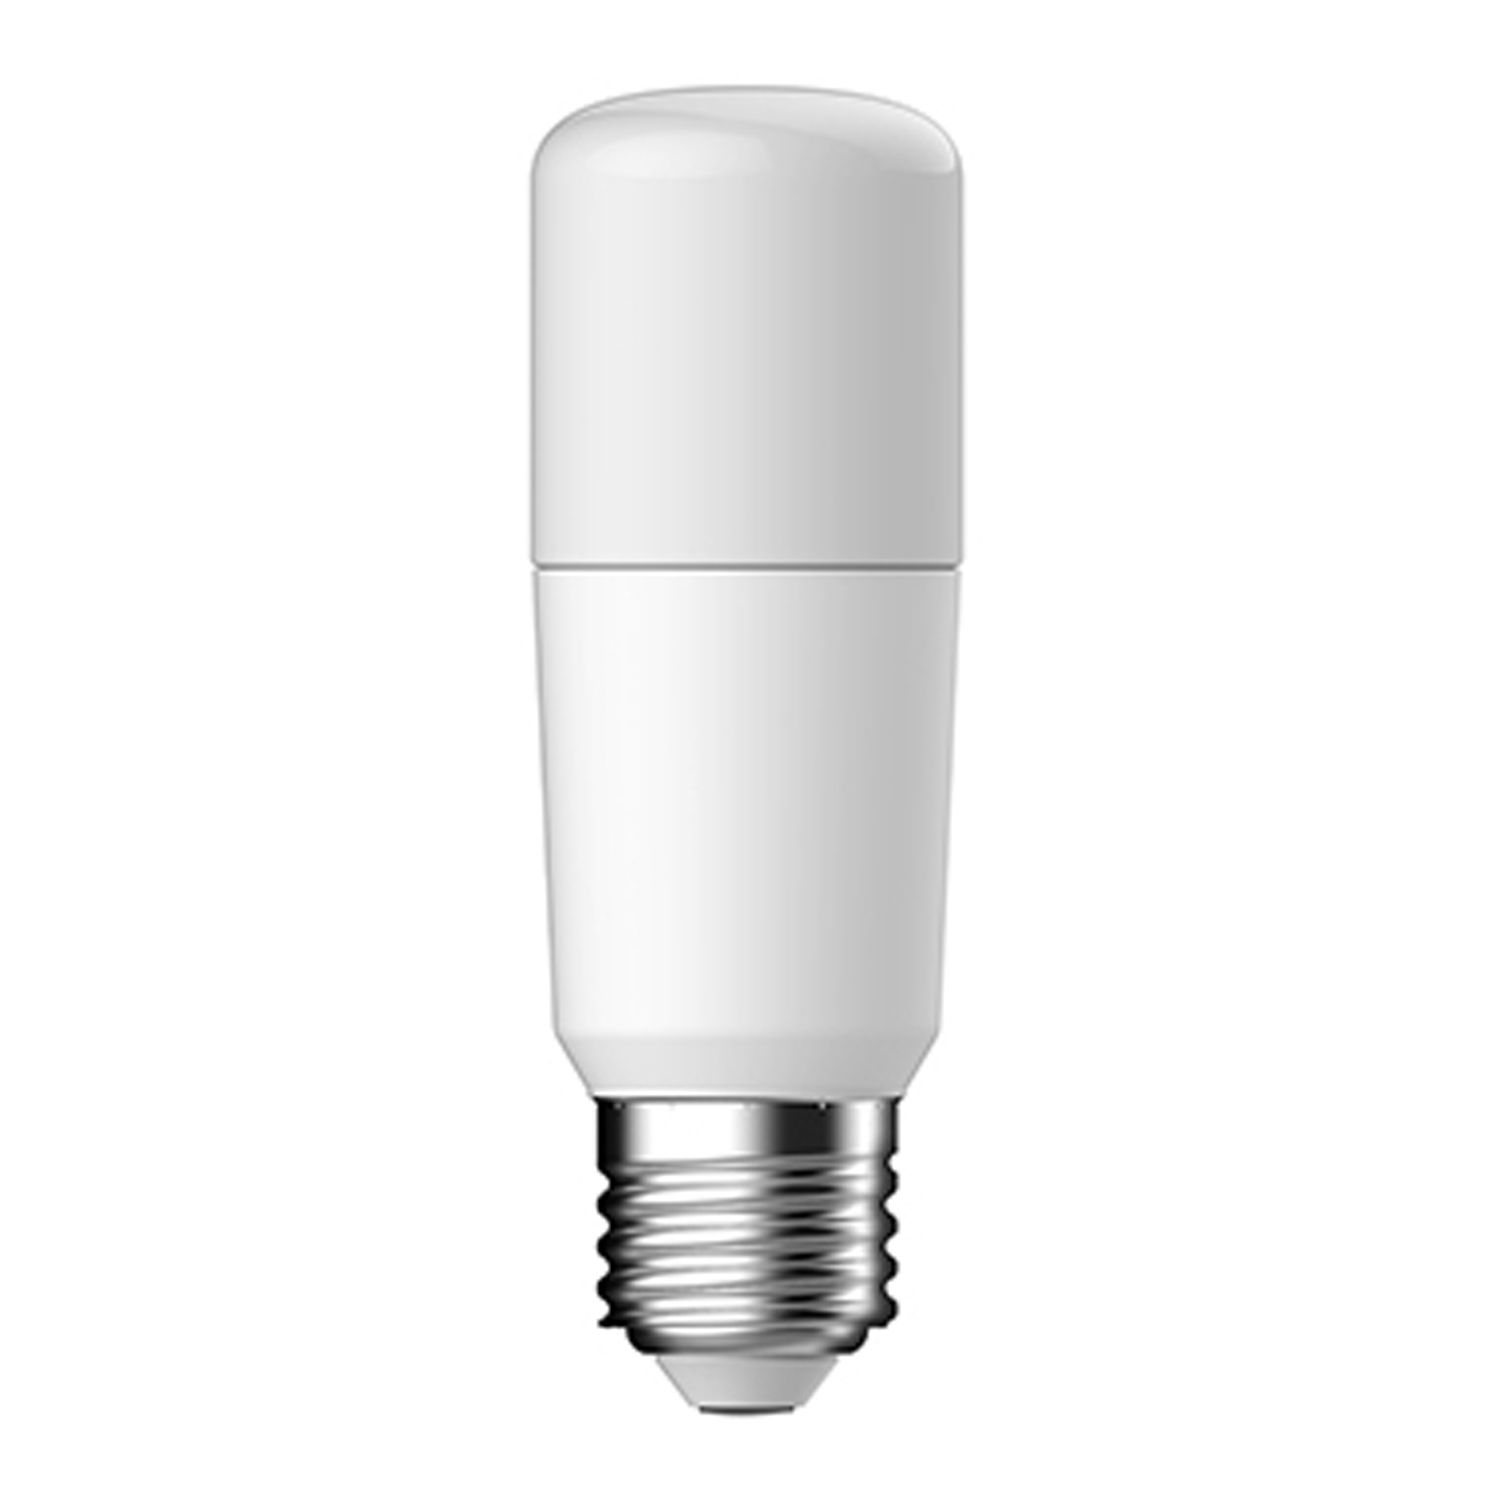 Tungsram Bright Stik LED E27 9W 865 Frosted | Daylight - Replaces 60W